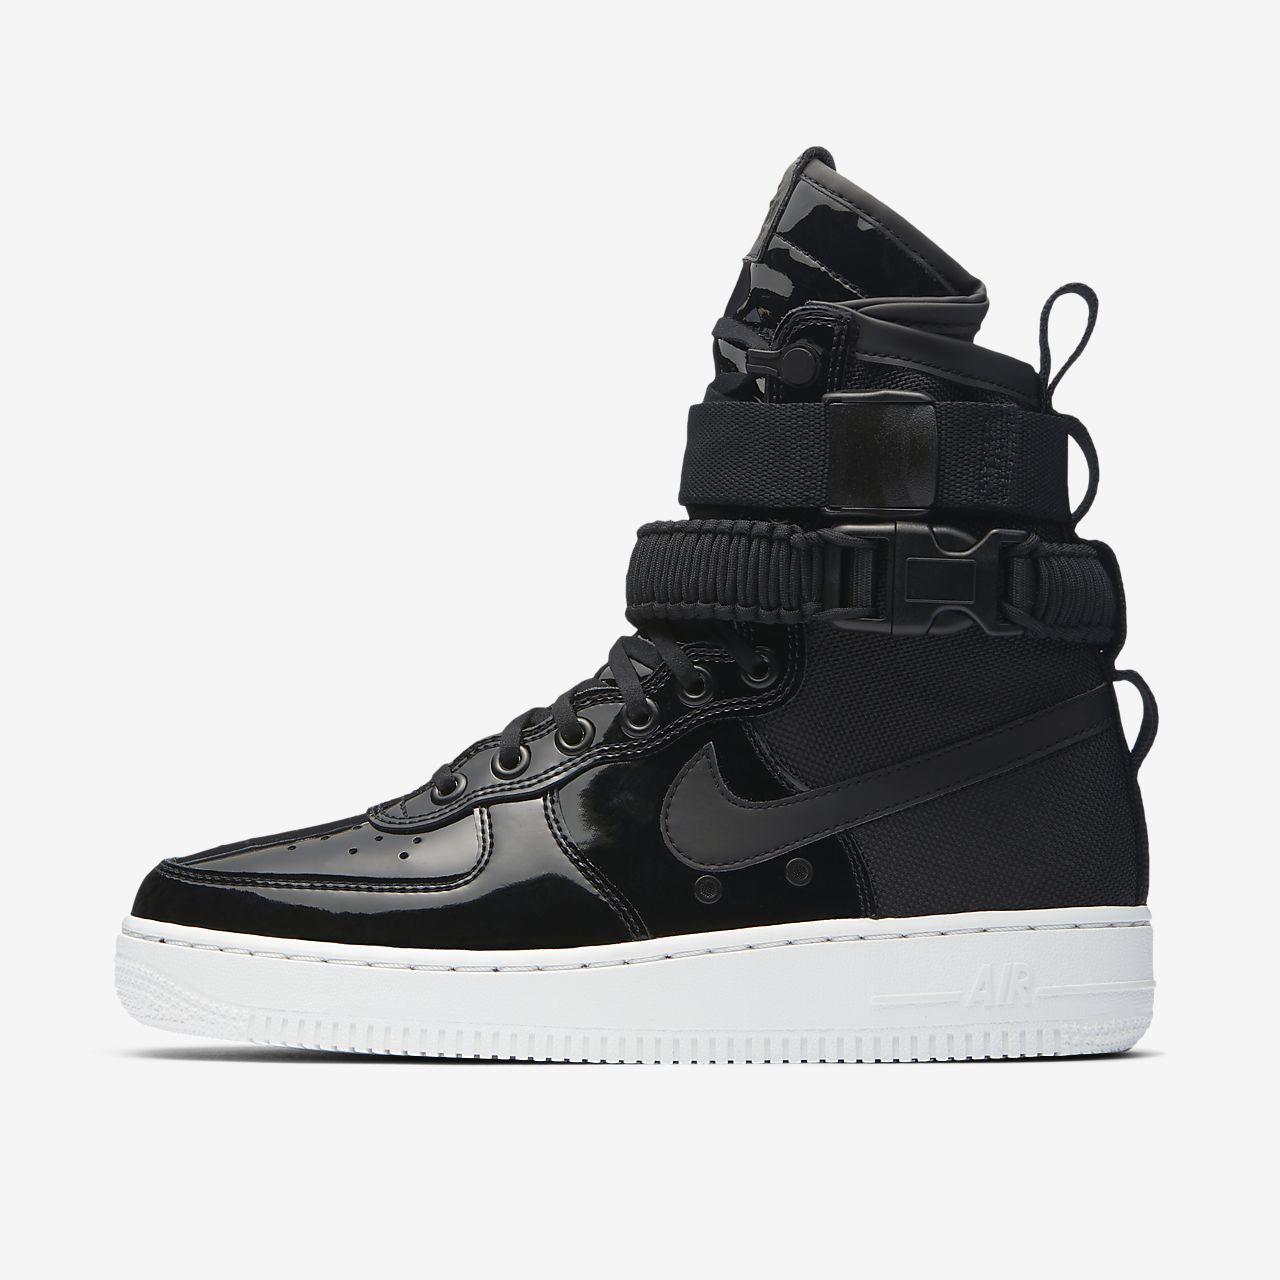 how much are nike air force 1 high tops nz